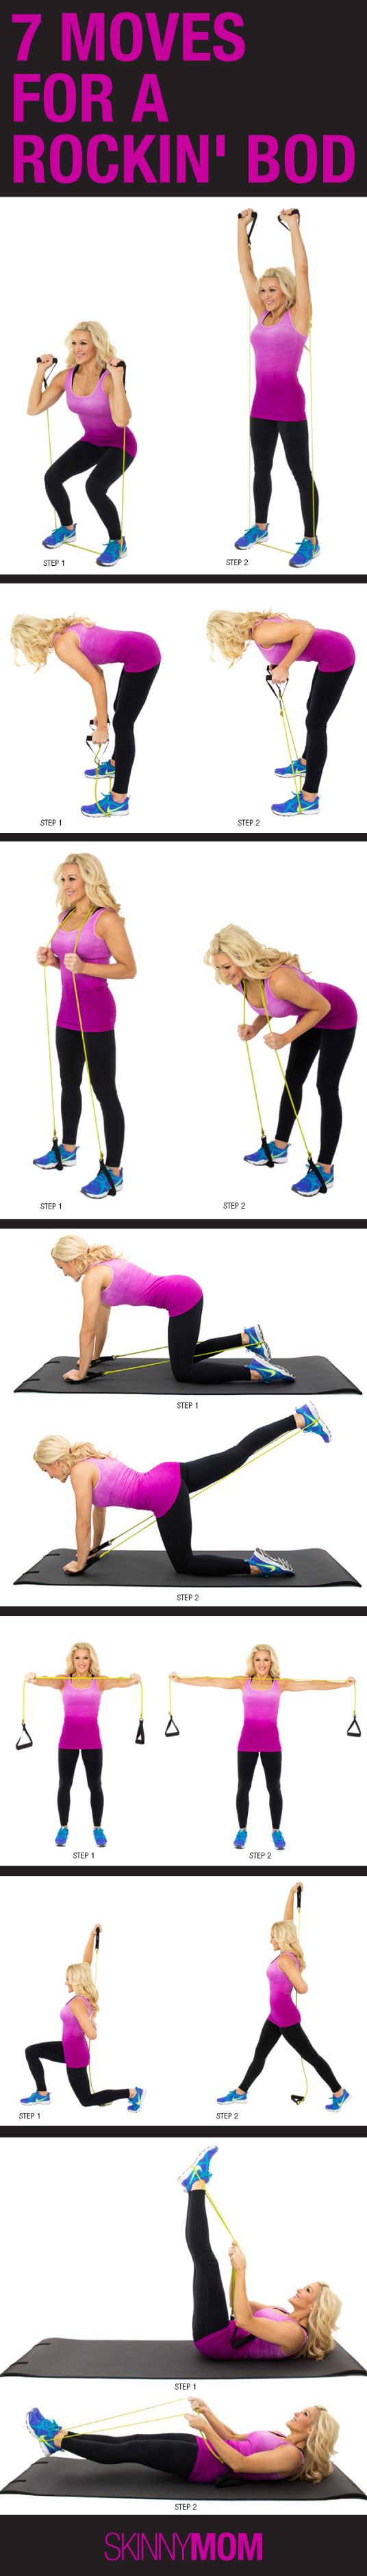 Try these 7 moves!